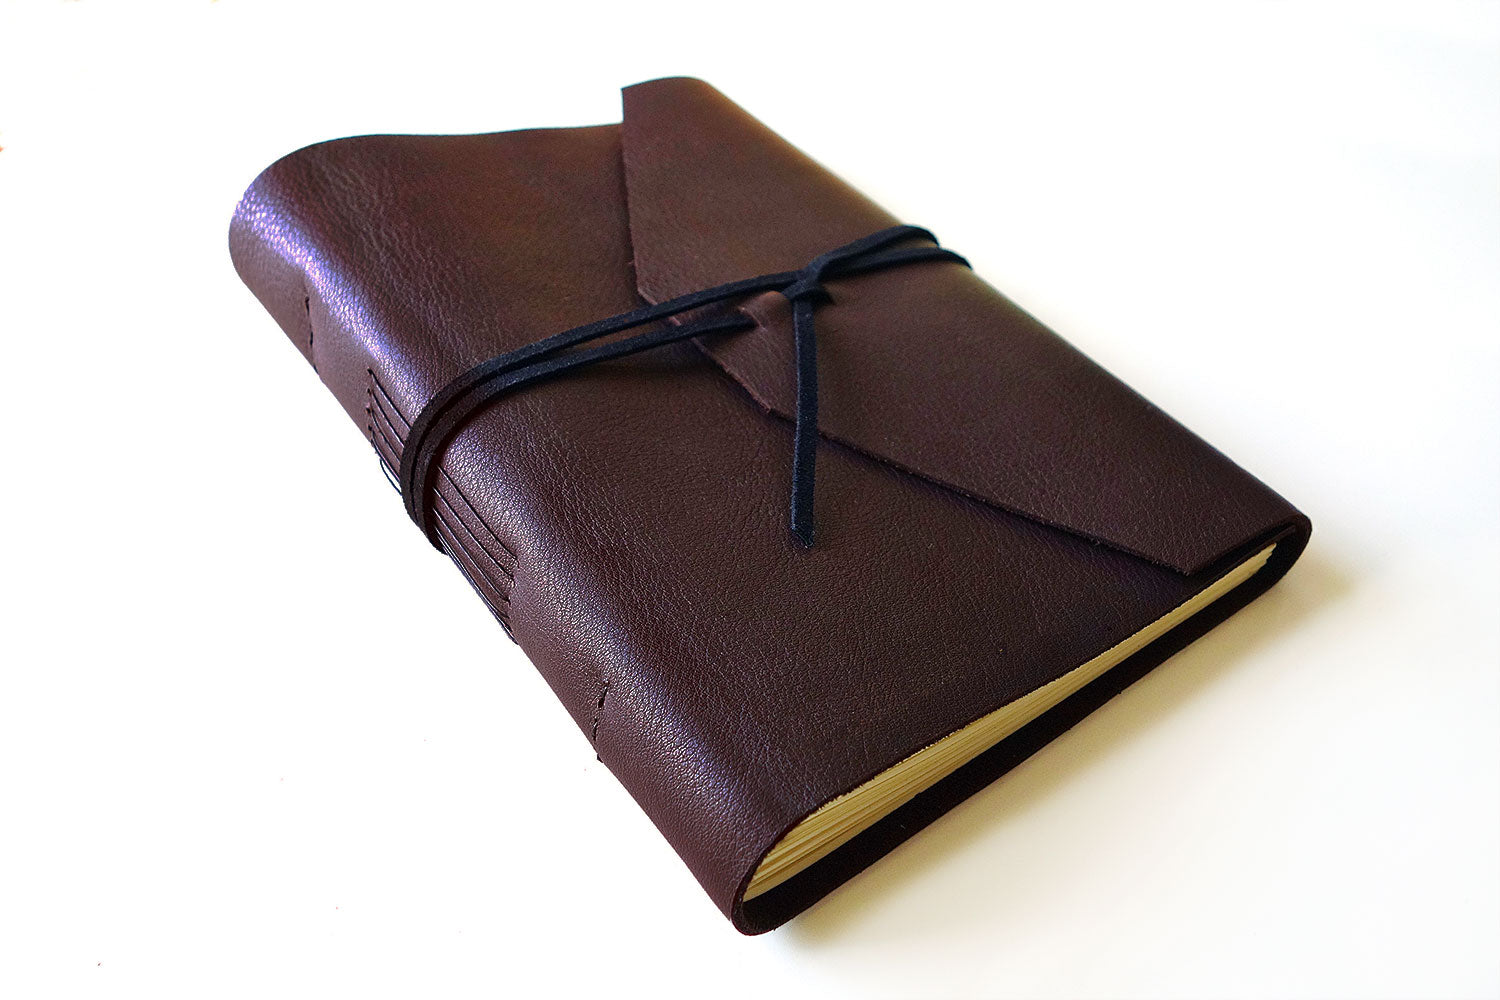 Personalized leather journal in dark brown leather from Bookshell bindery